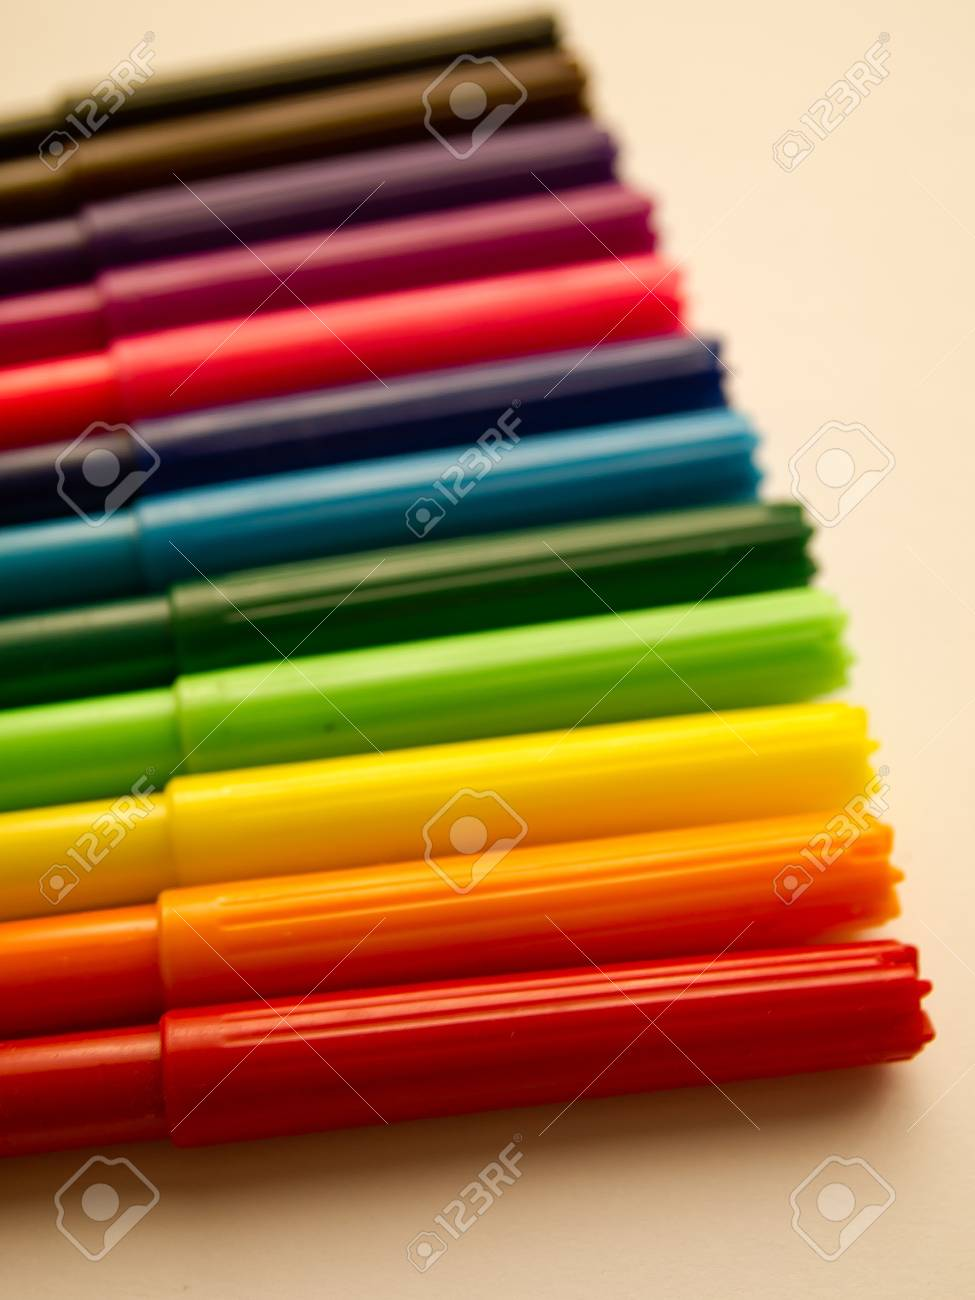 Colorful pen on white background Stock Photo - 14804487